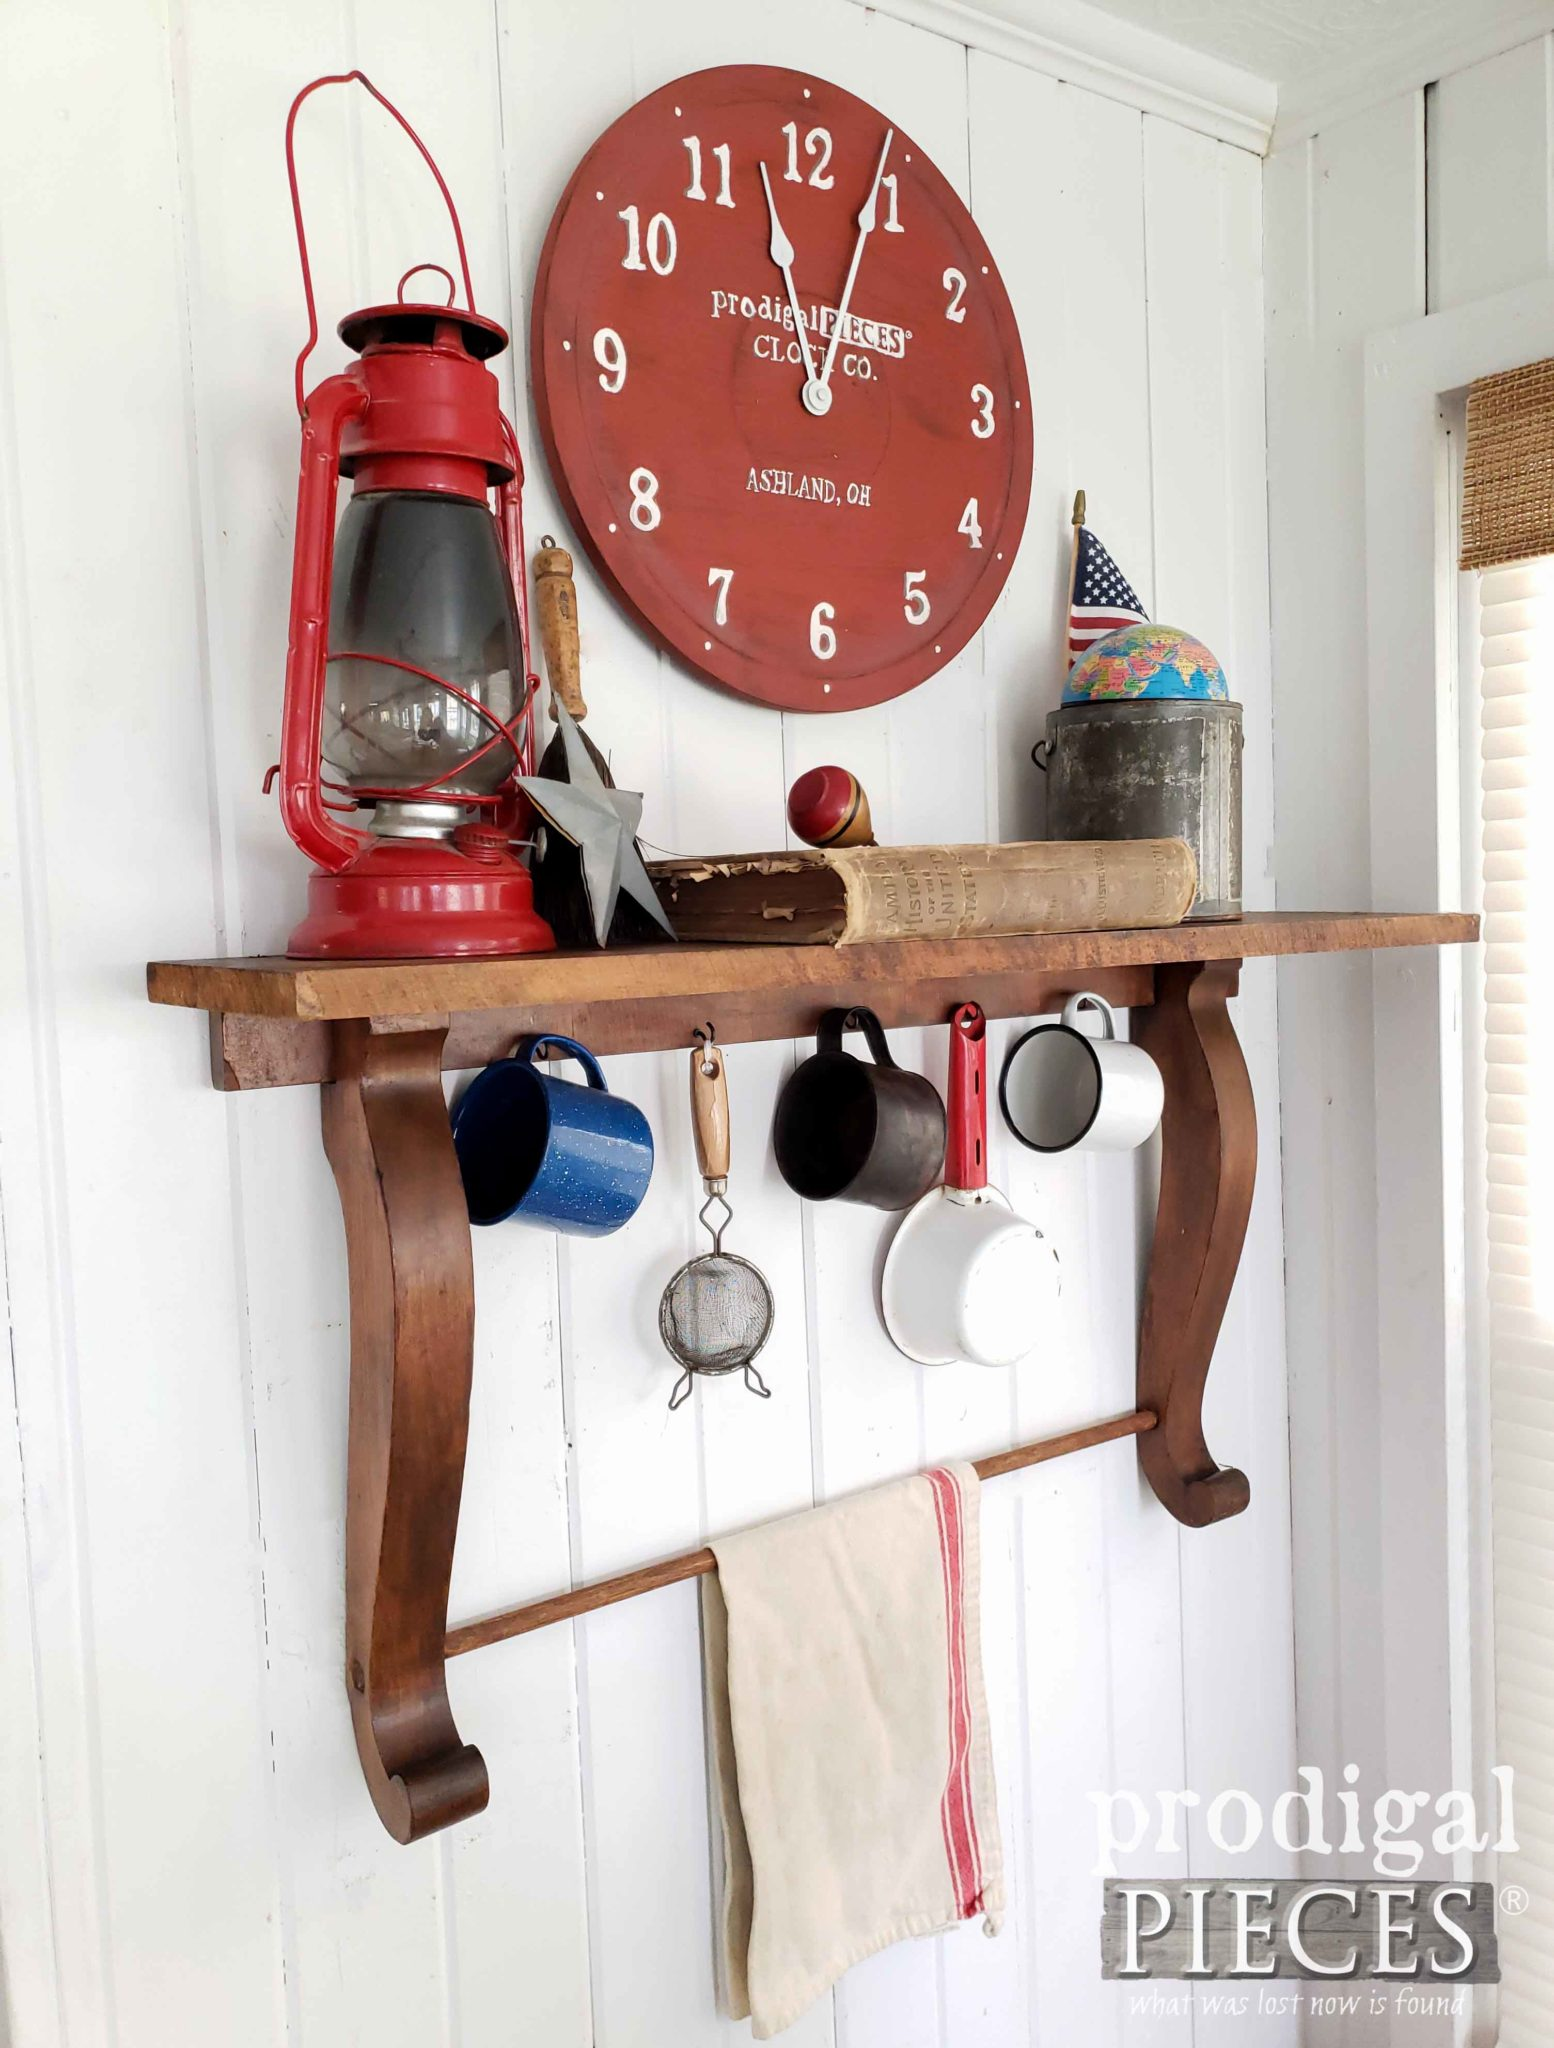 Americana Farmhouse Style Repurposed Wall Clock and Mirror Harp Shelf by Larissa of Prodigal Pieces | prodigalpieces.com